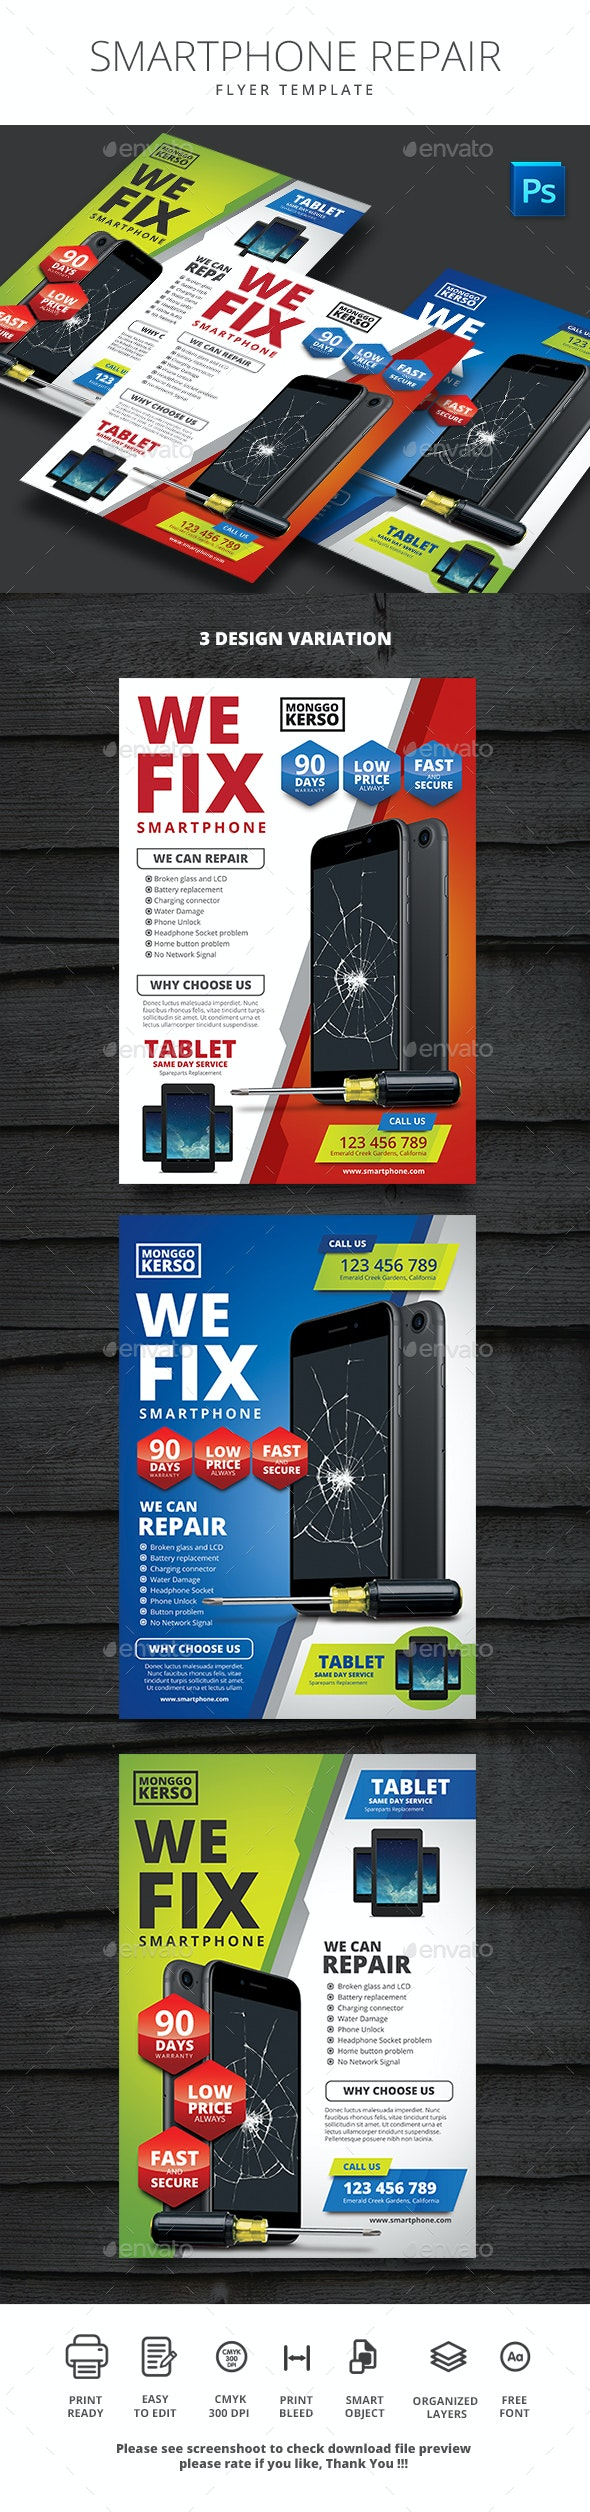 Smartphone Repair - Corporate Flyers